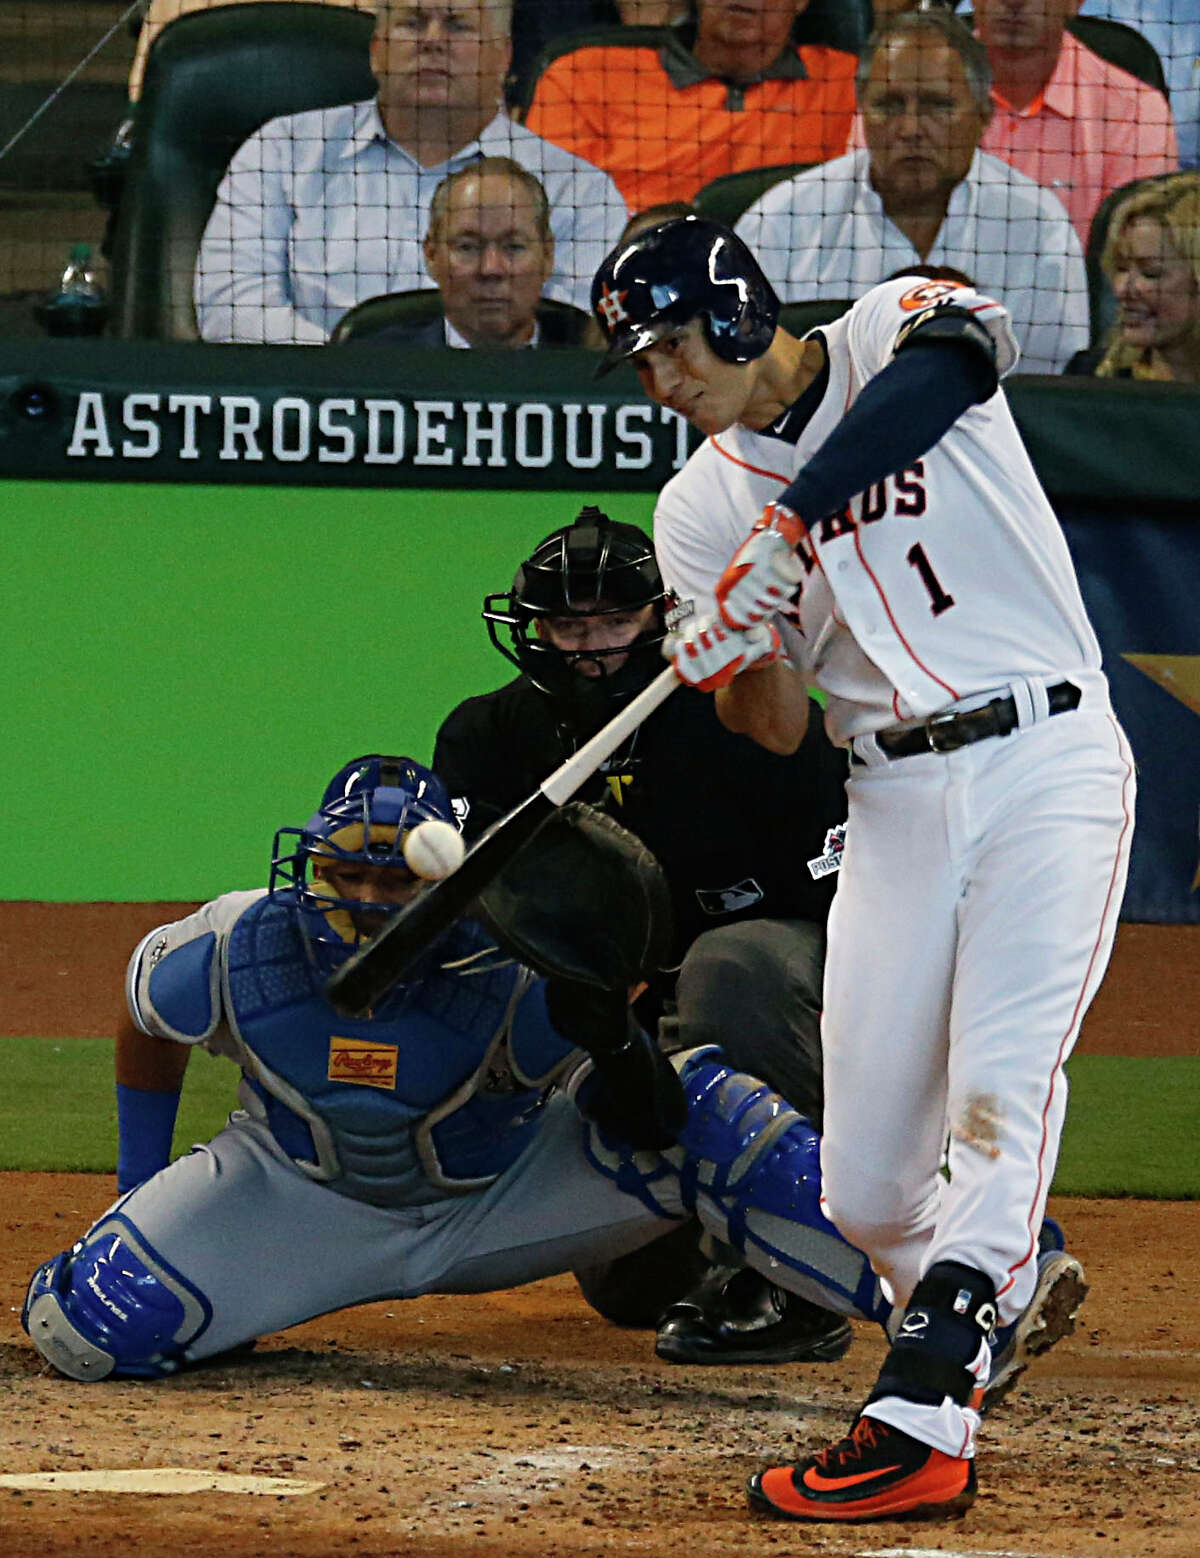 Houston Astros shortstop Carlos Correa hits a home run off of Kansas City Royals starting pitcher Yordano Ventura during the inning in game 4 of the ALDS playoff game at Minute Maid Park Monday, Oct. 12, 2015, in Houston. ( James Nielsen / Houston Chronicle )